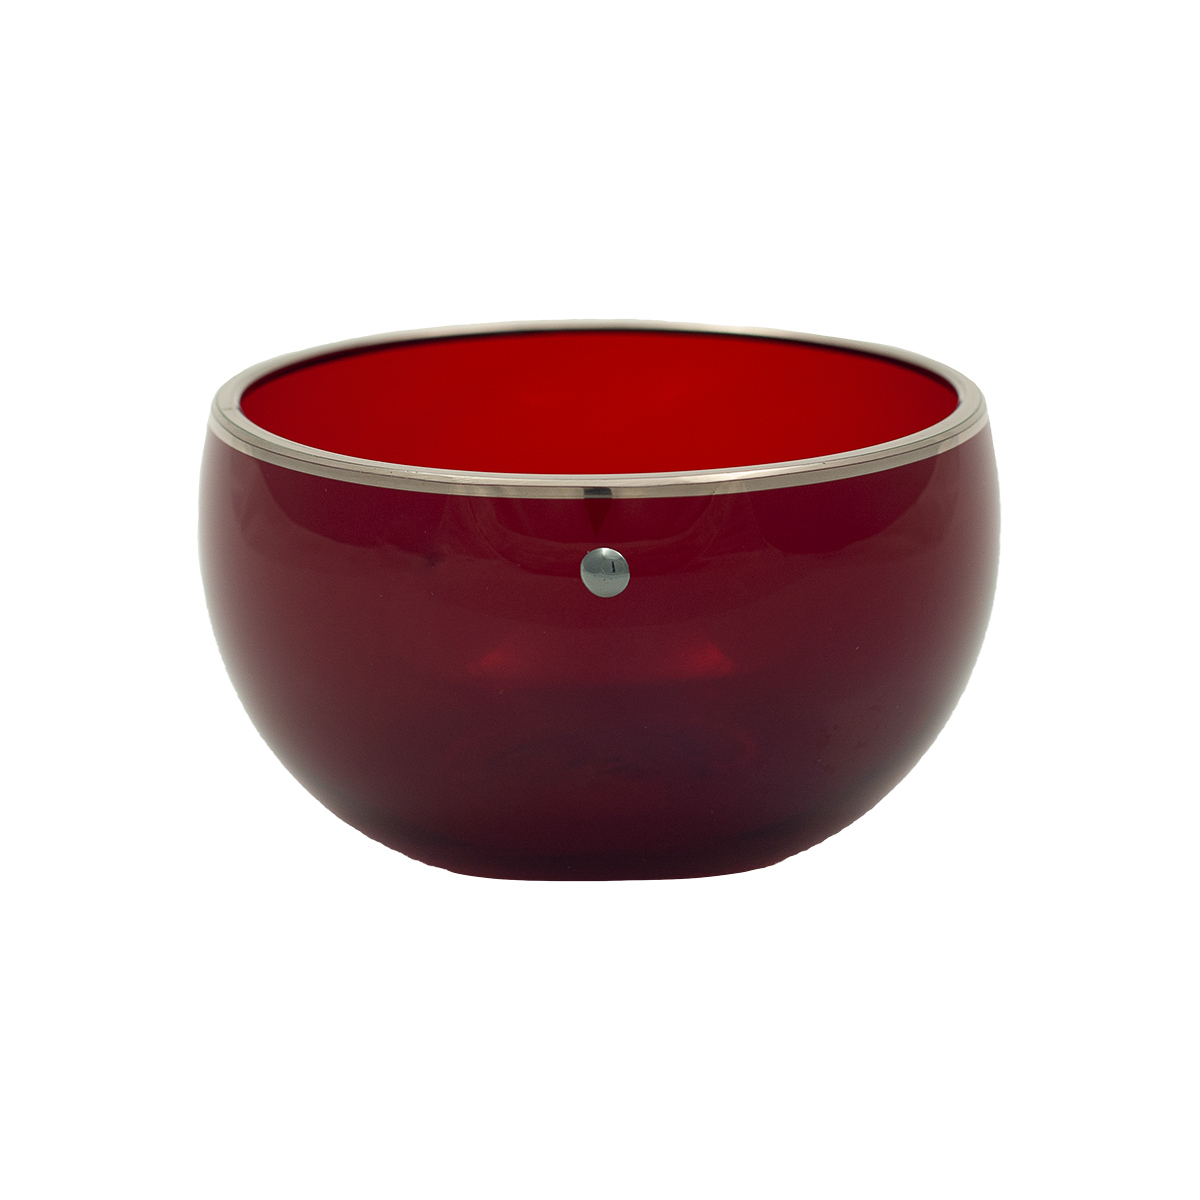 jai-cup-design-red-giberto-murano-glass-platinum-venice-luxury-stone